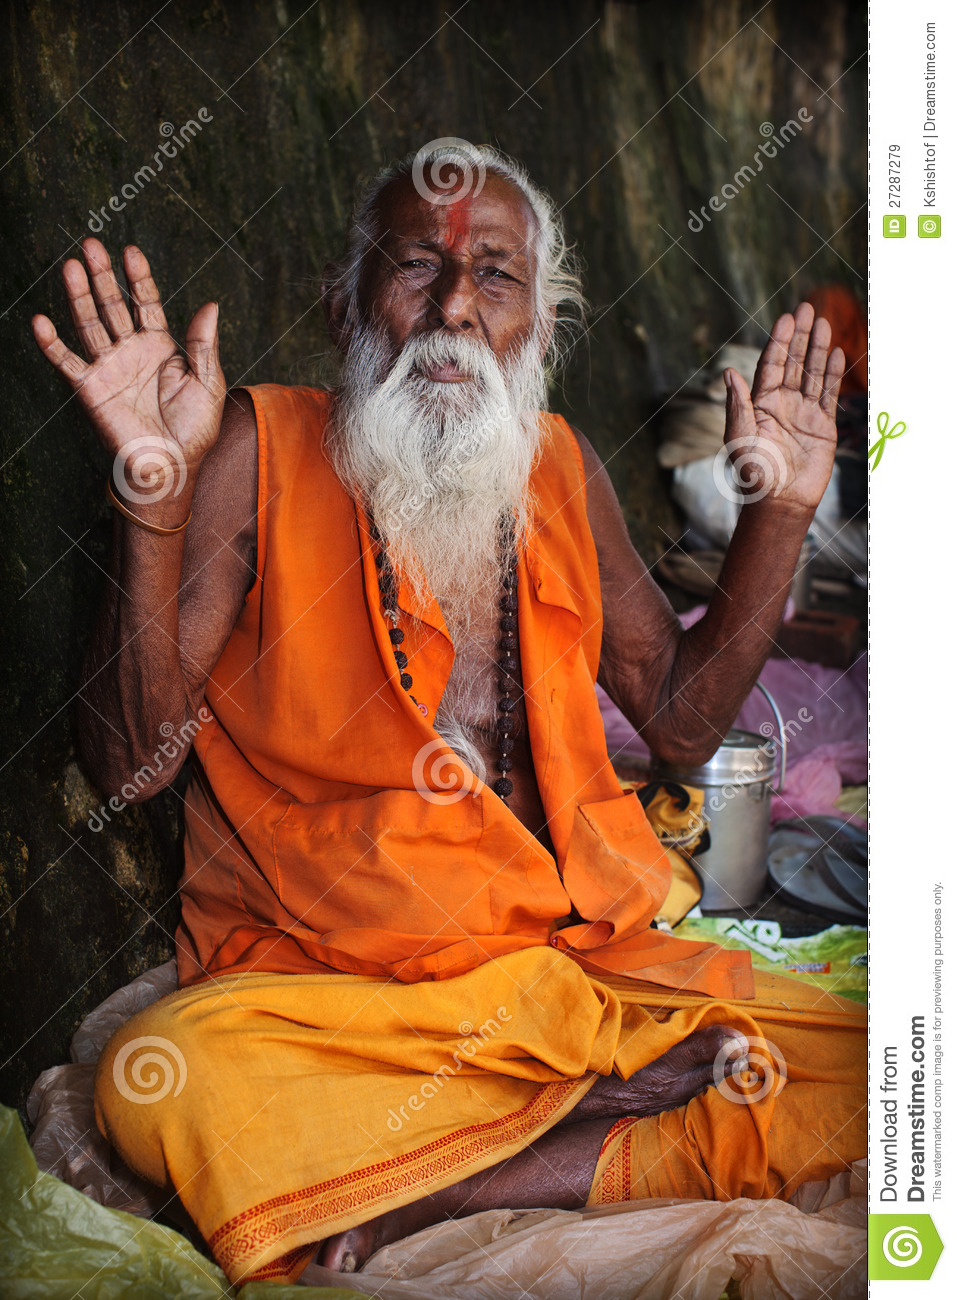 indian sadhu stock image image of person india looking